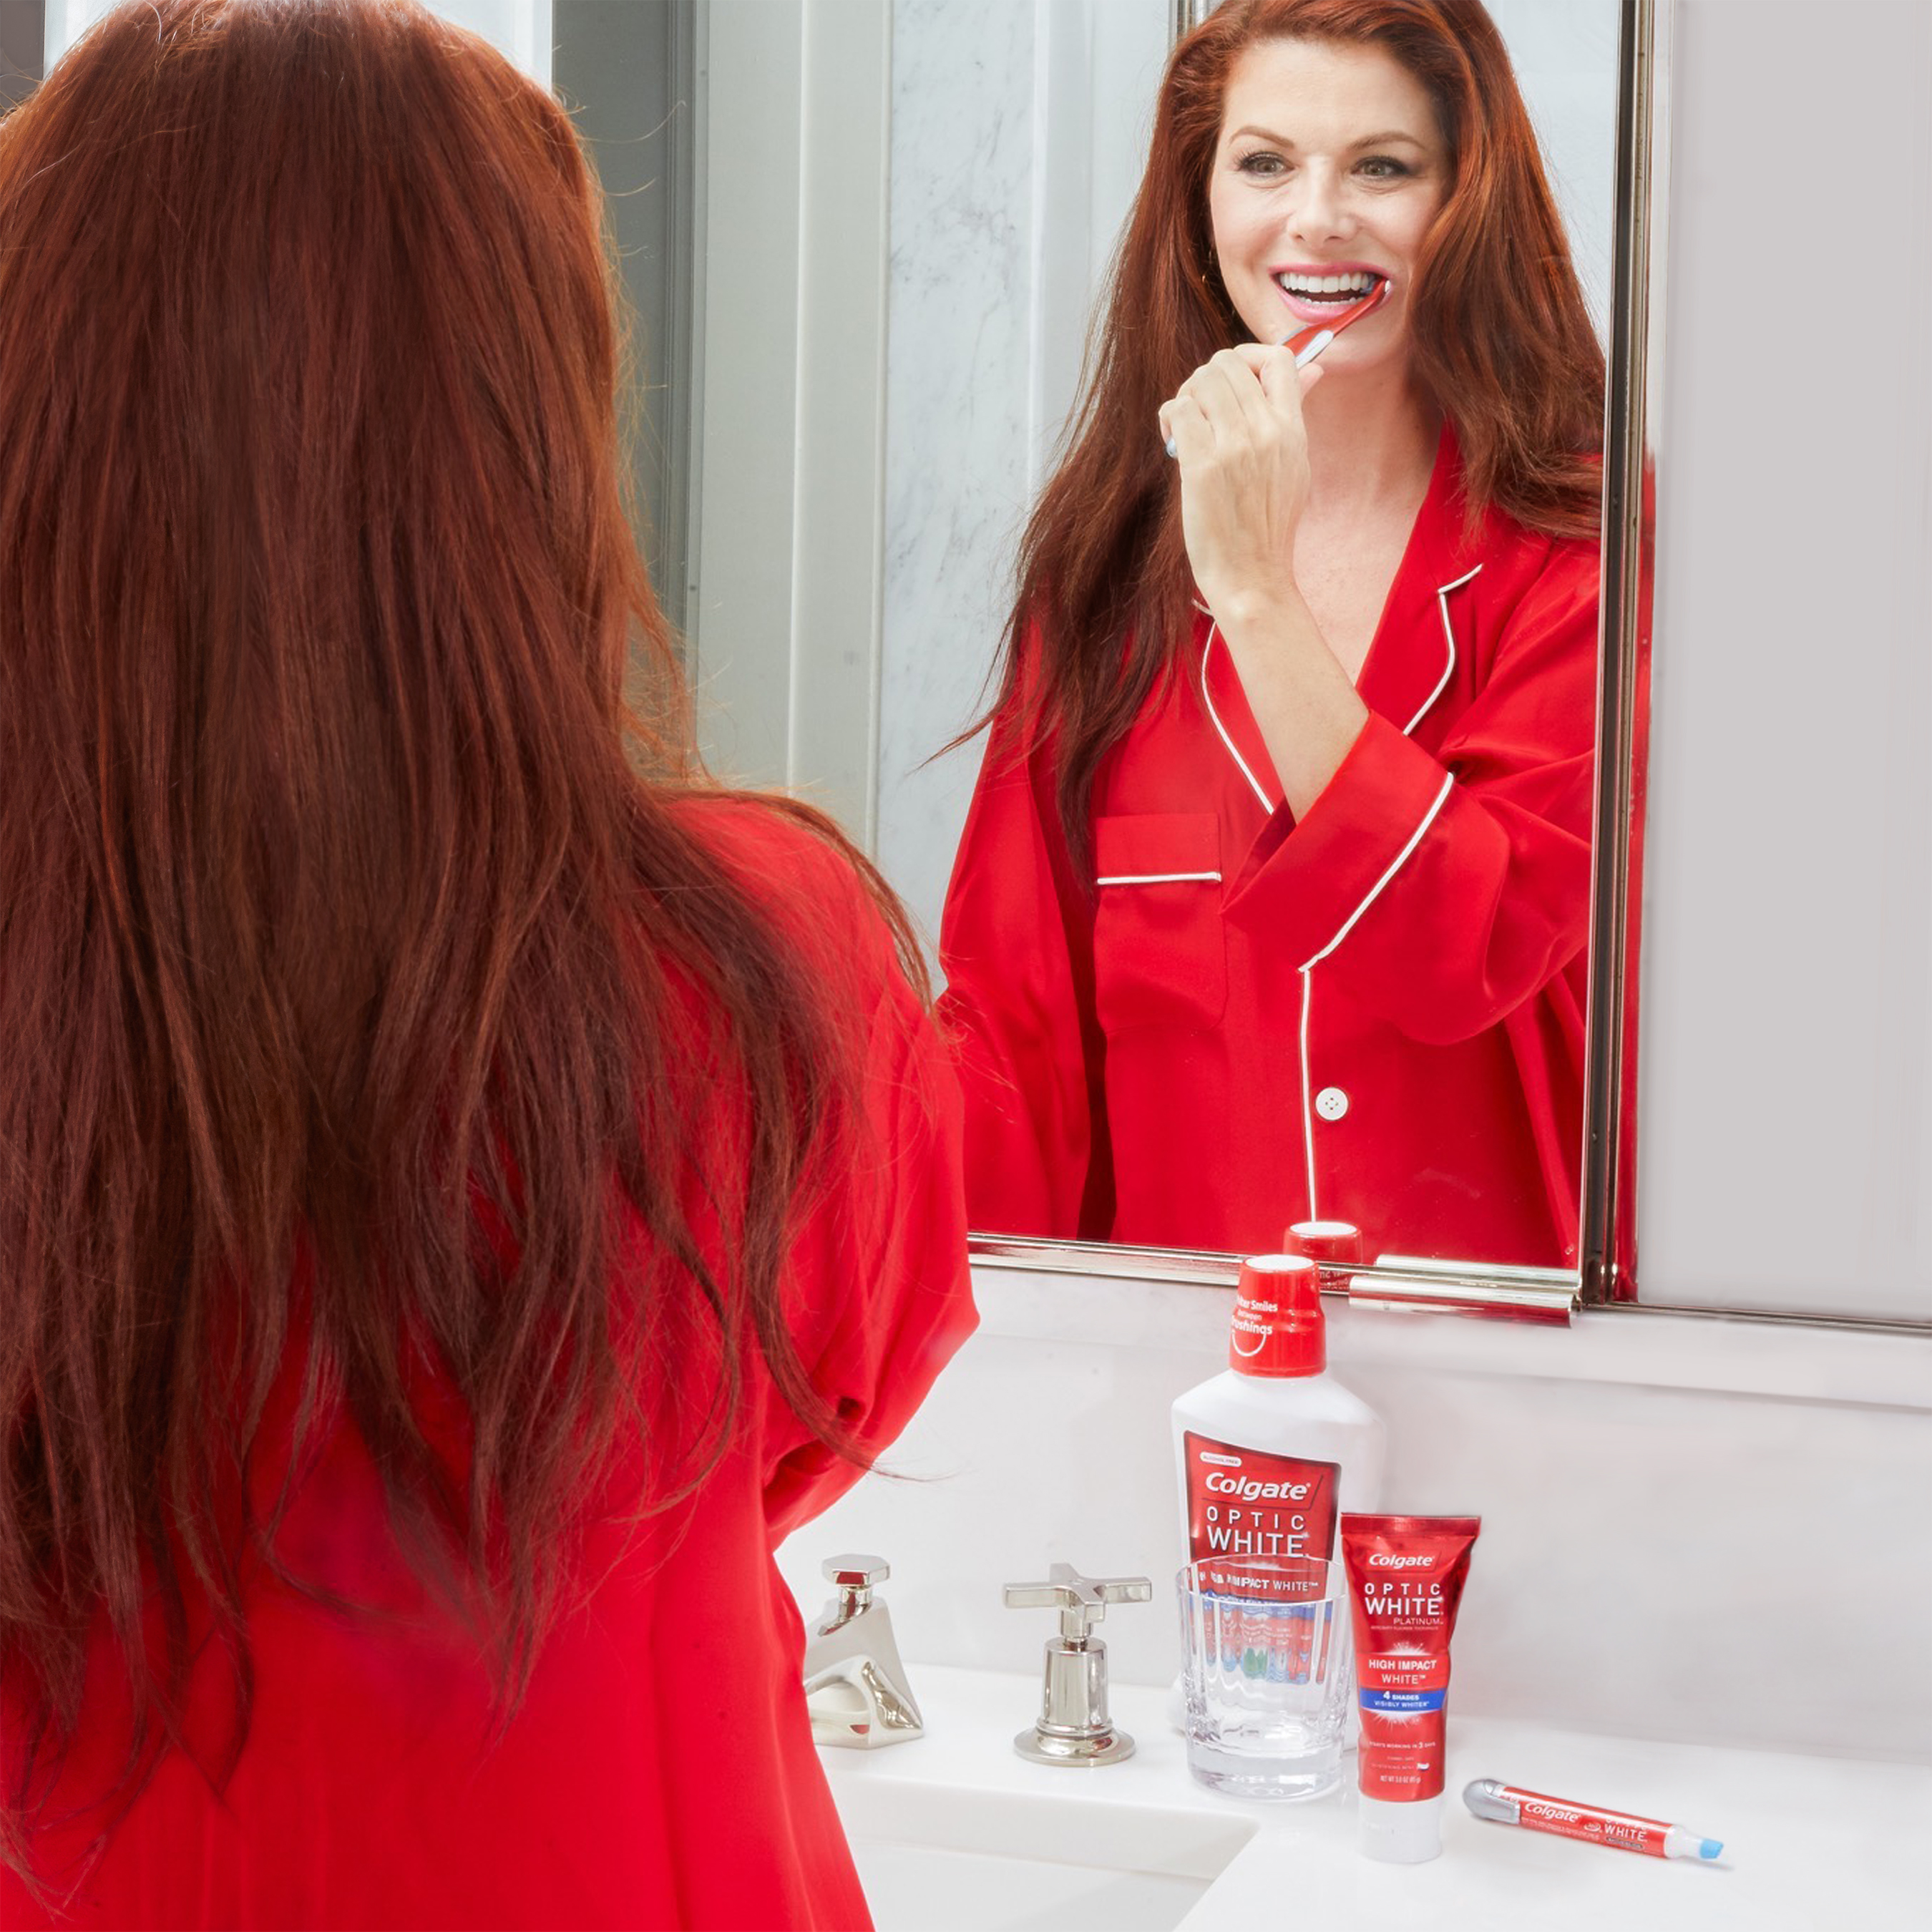 Actress Debra Messing reveals that the key to her iconic bright, white smile is Colgate Optic White High Impact White.